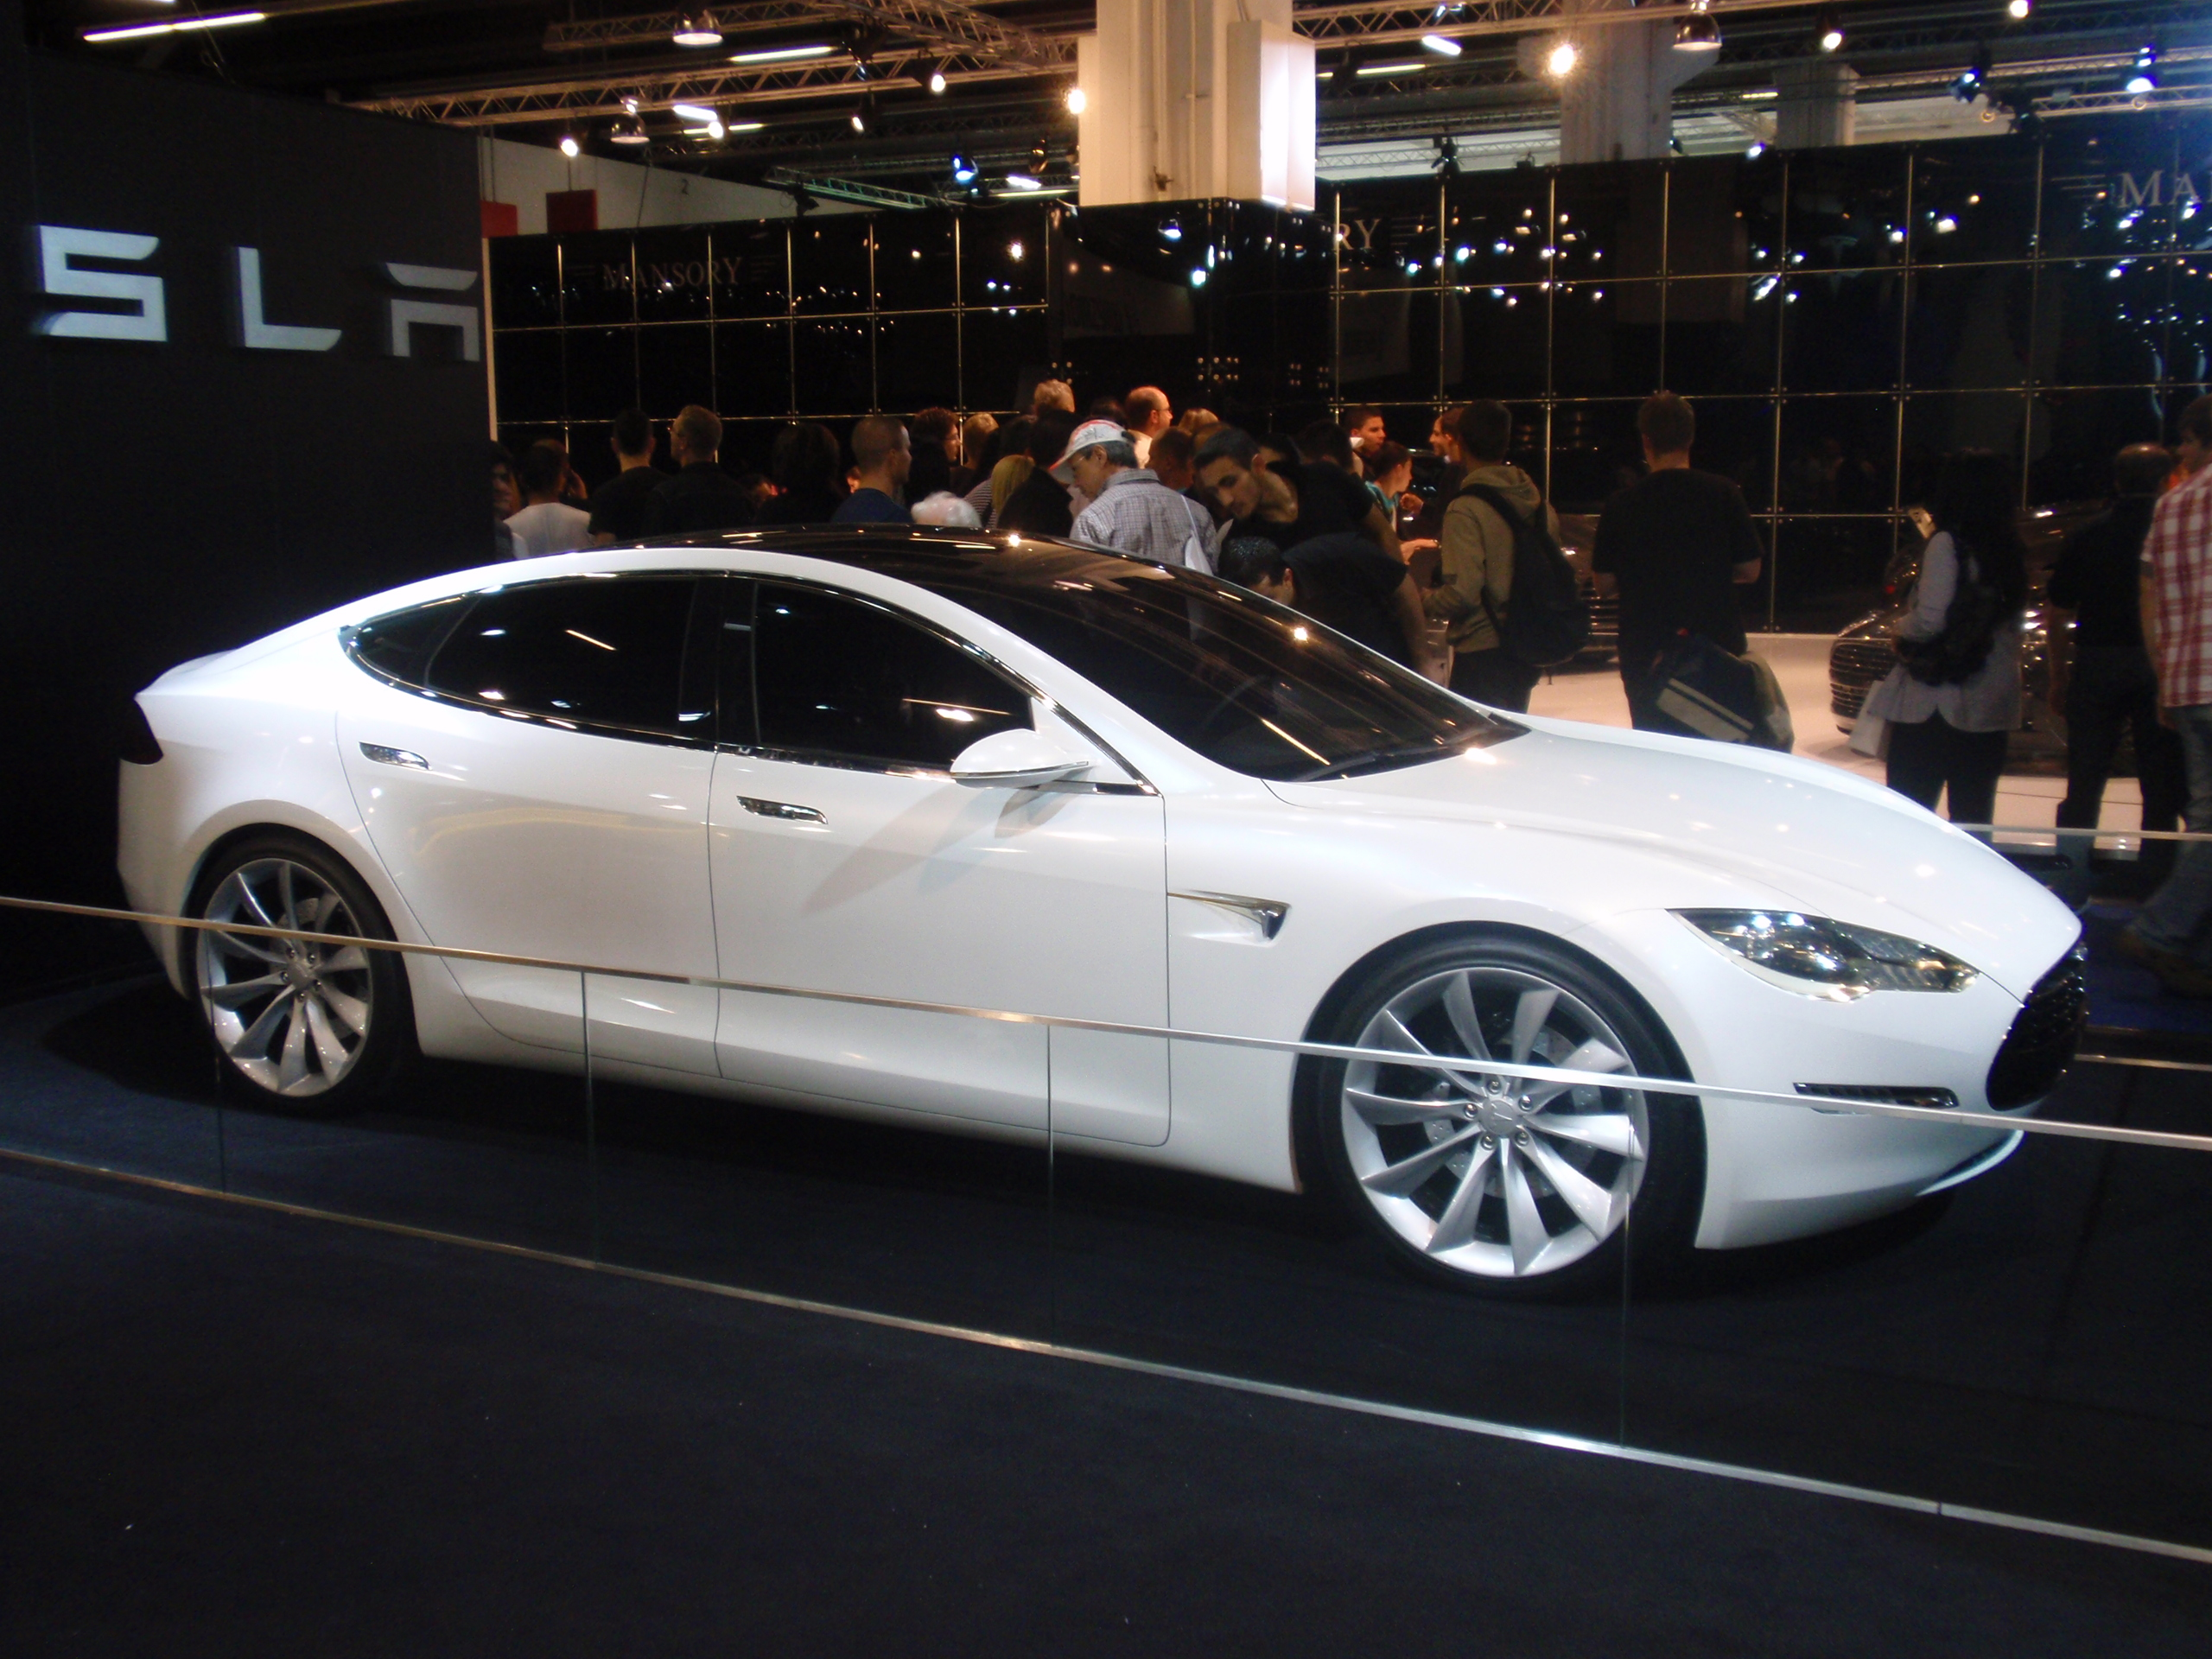 Tesla Model S Electric Vehicles